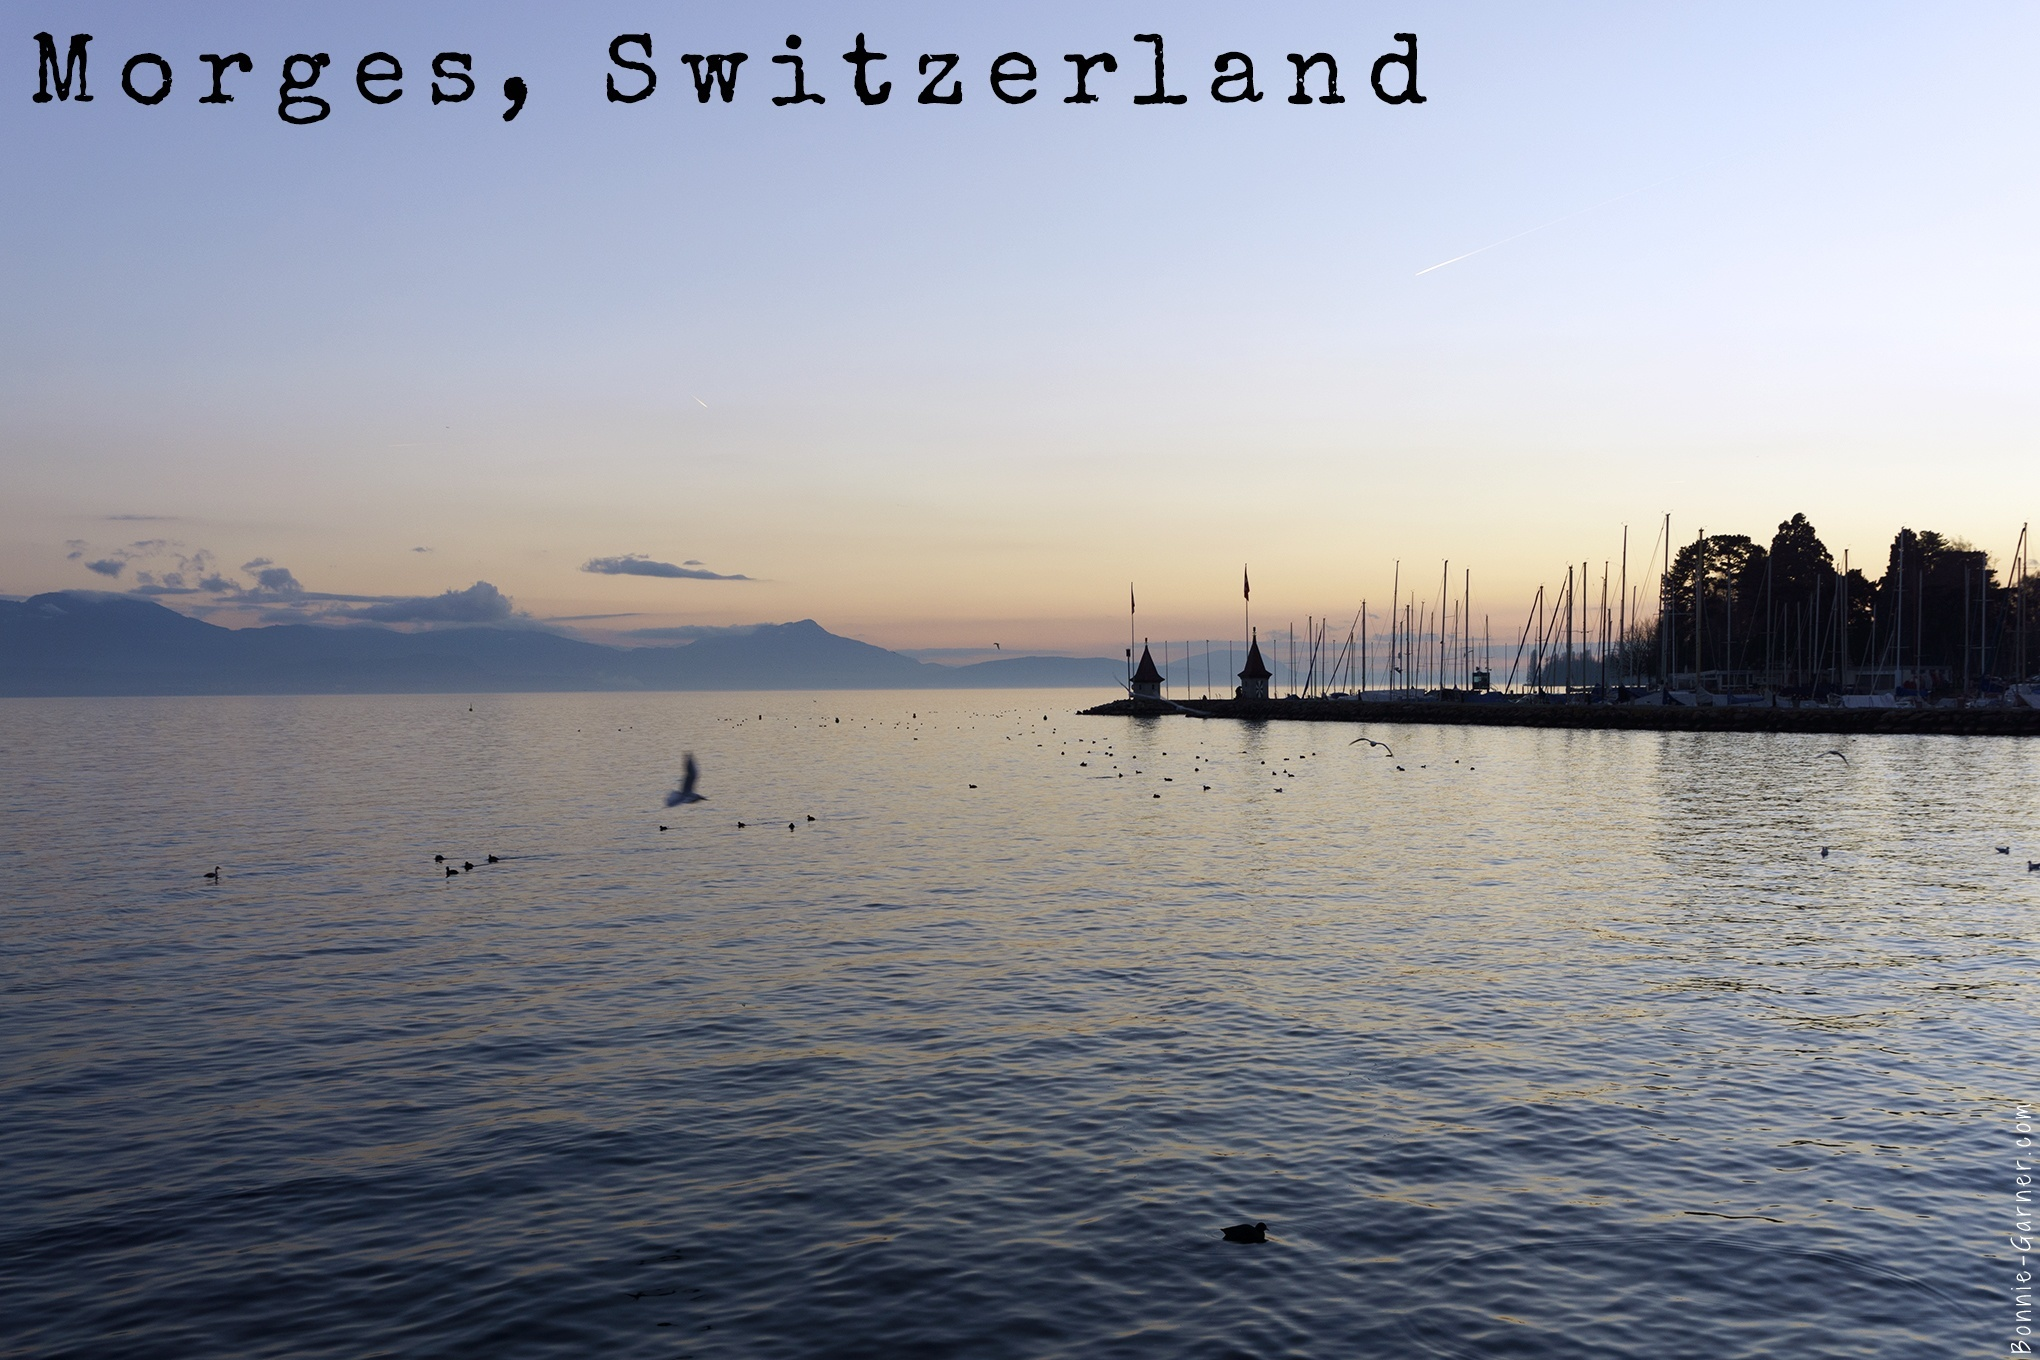 Morges, Switzerland